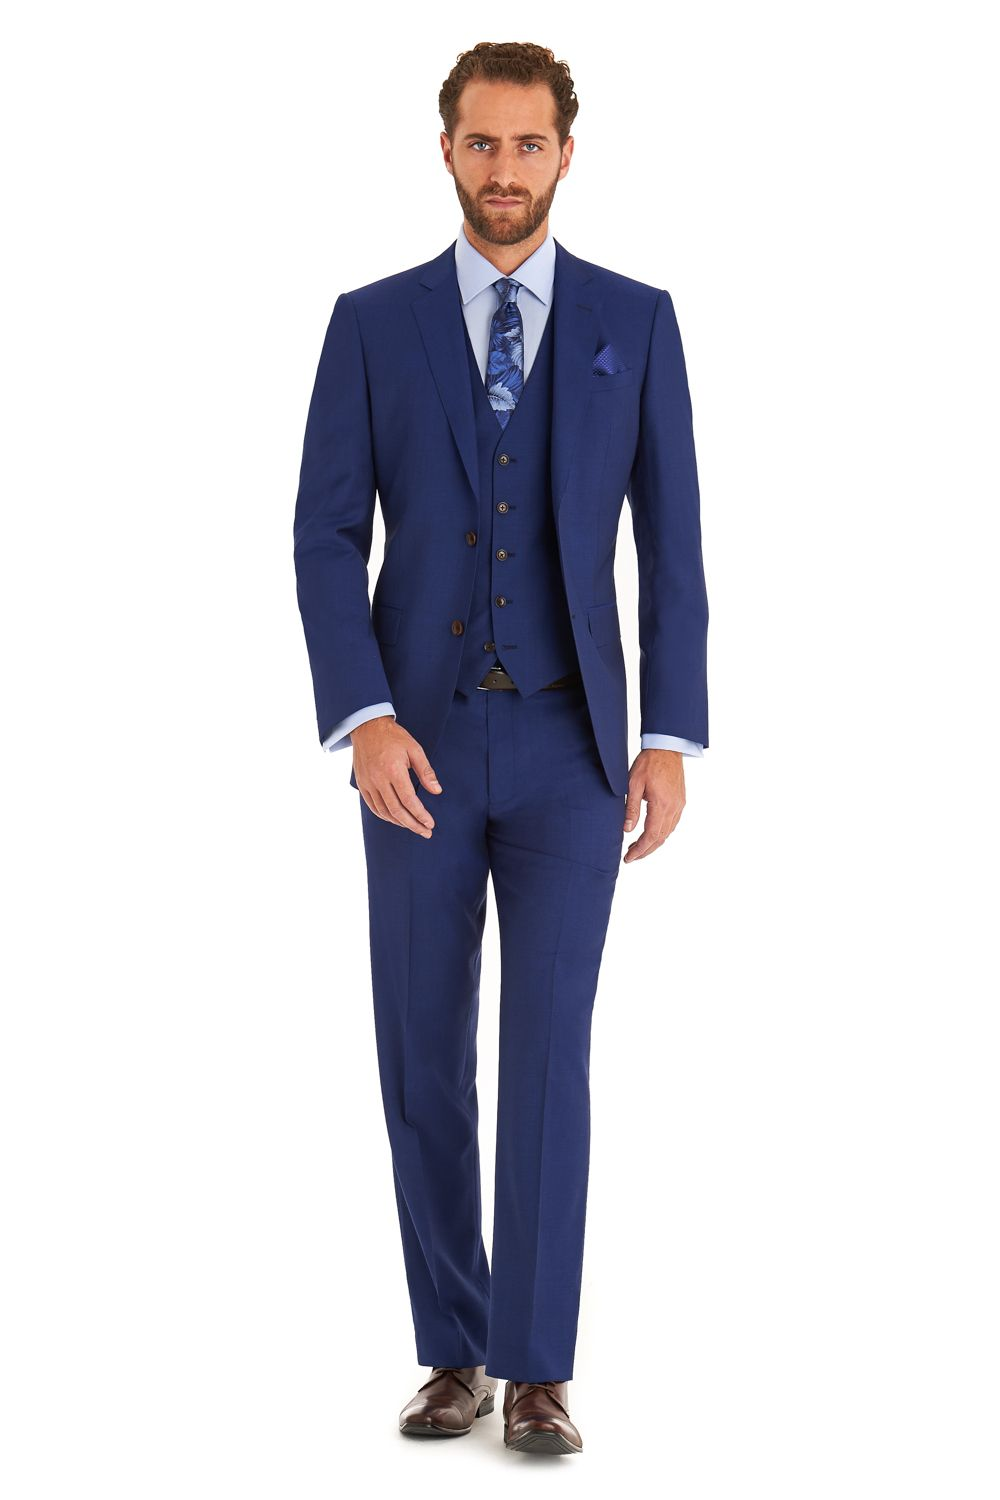 Moss 1851 Tailored Fit Bright Blue 3 Piece Suit   Jo & Gary ...